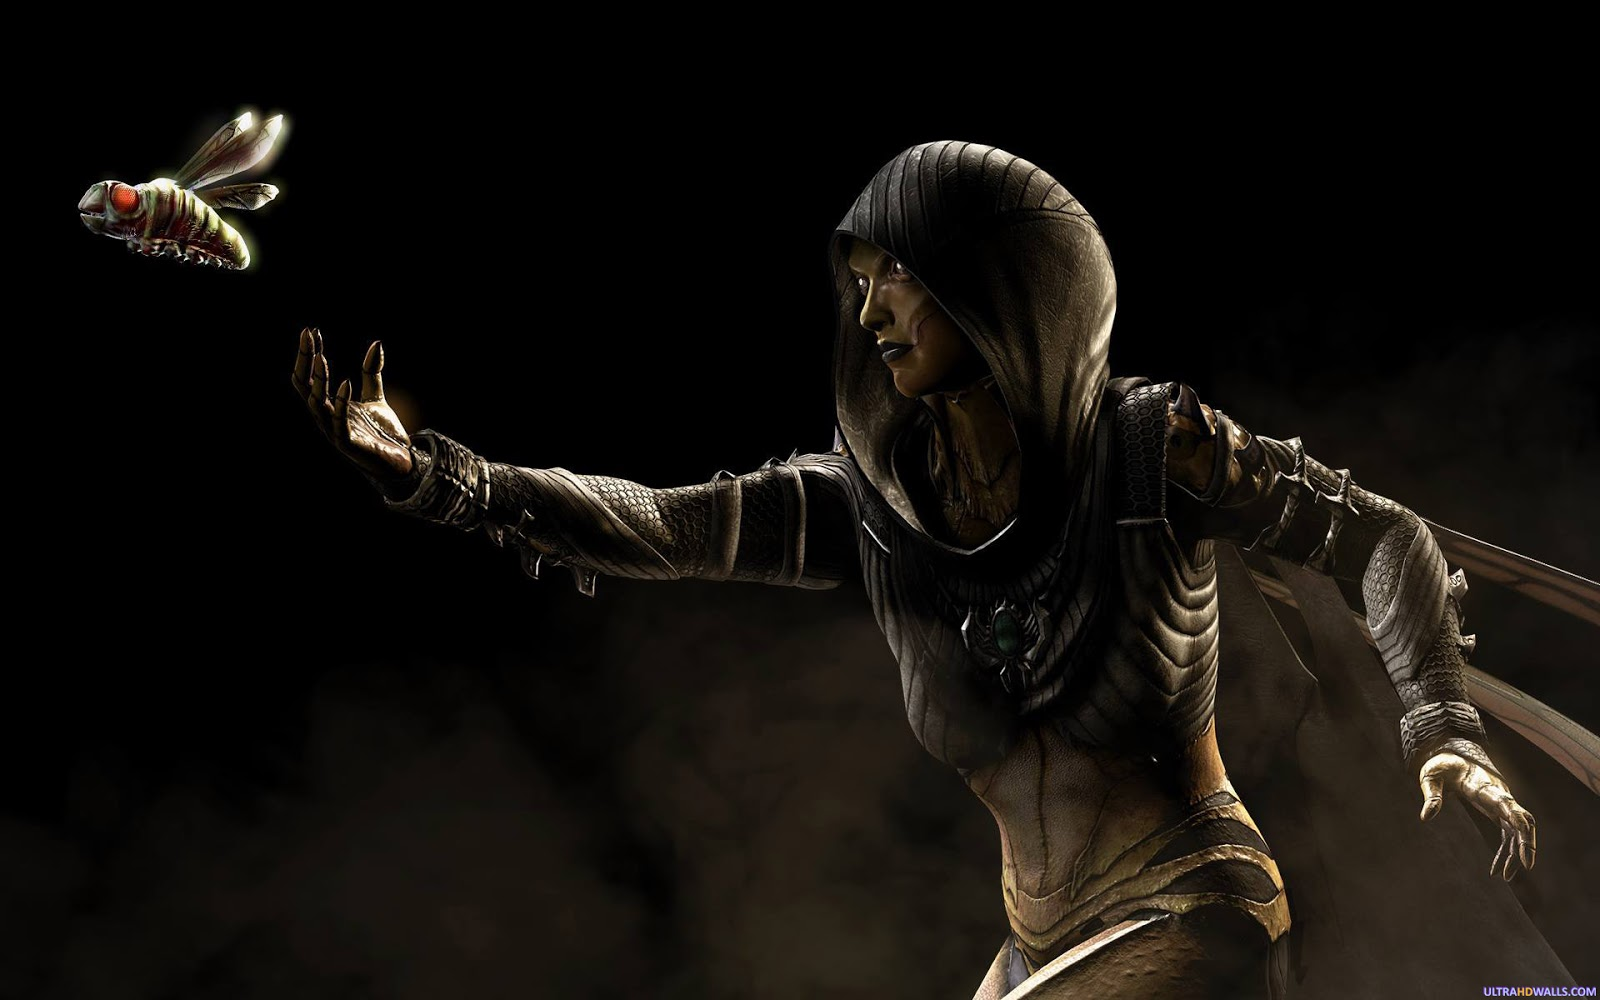 mortal kombat x game hd wallpapers - hd wallpaper jos